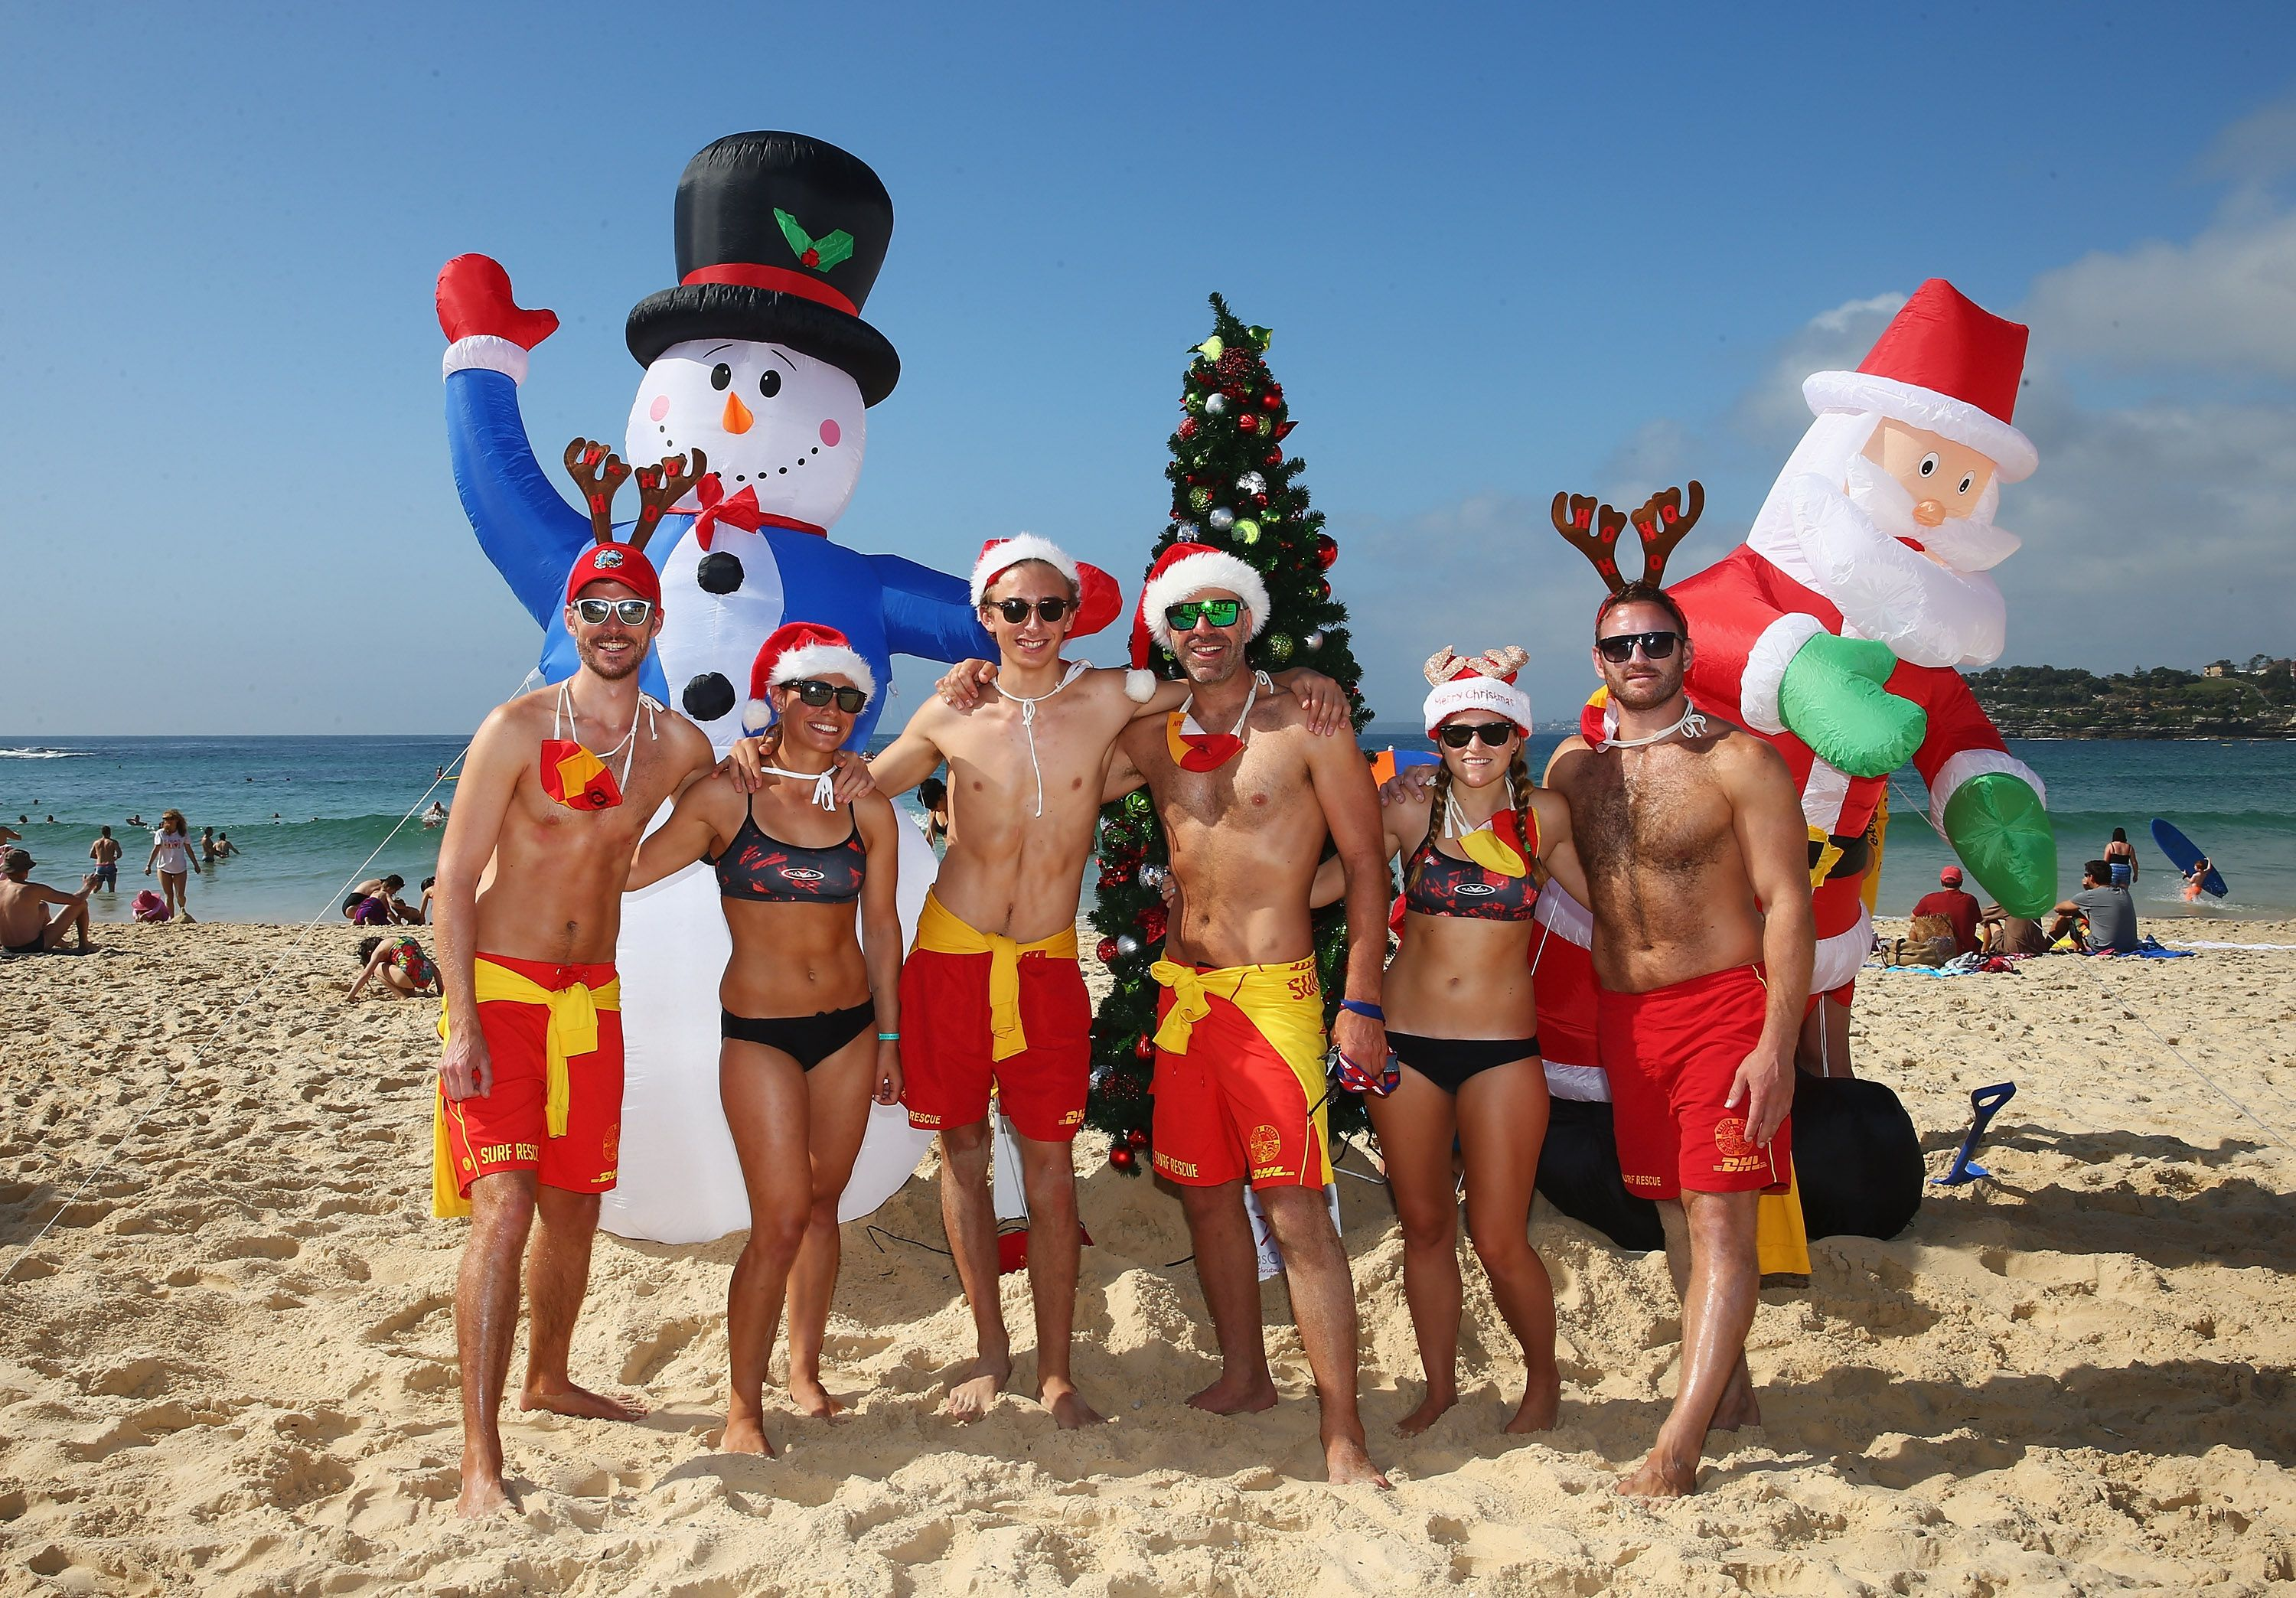 This Is What Christmas Looks Like Around The World | Christmas in australia, Aussie christmas, Beach christmas